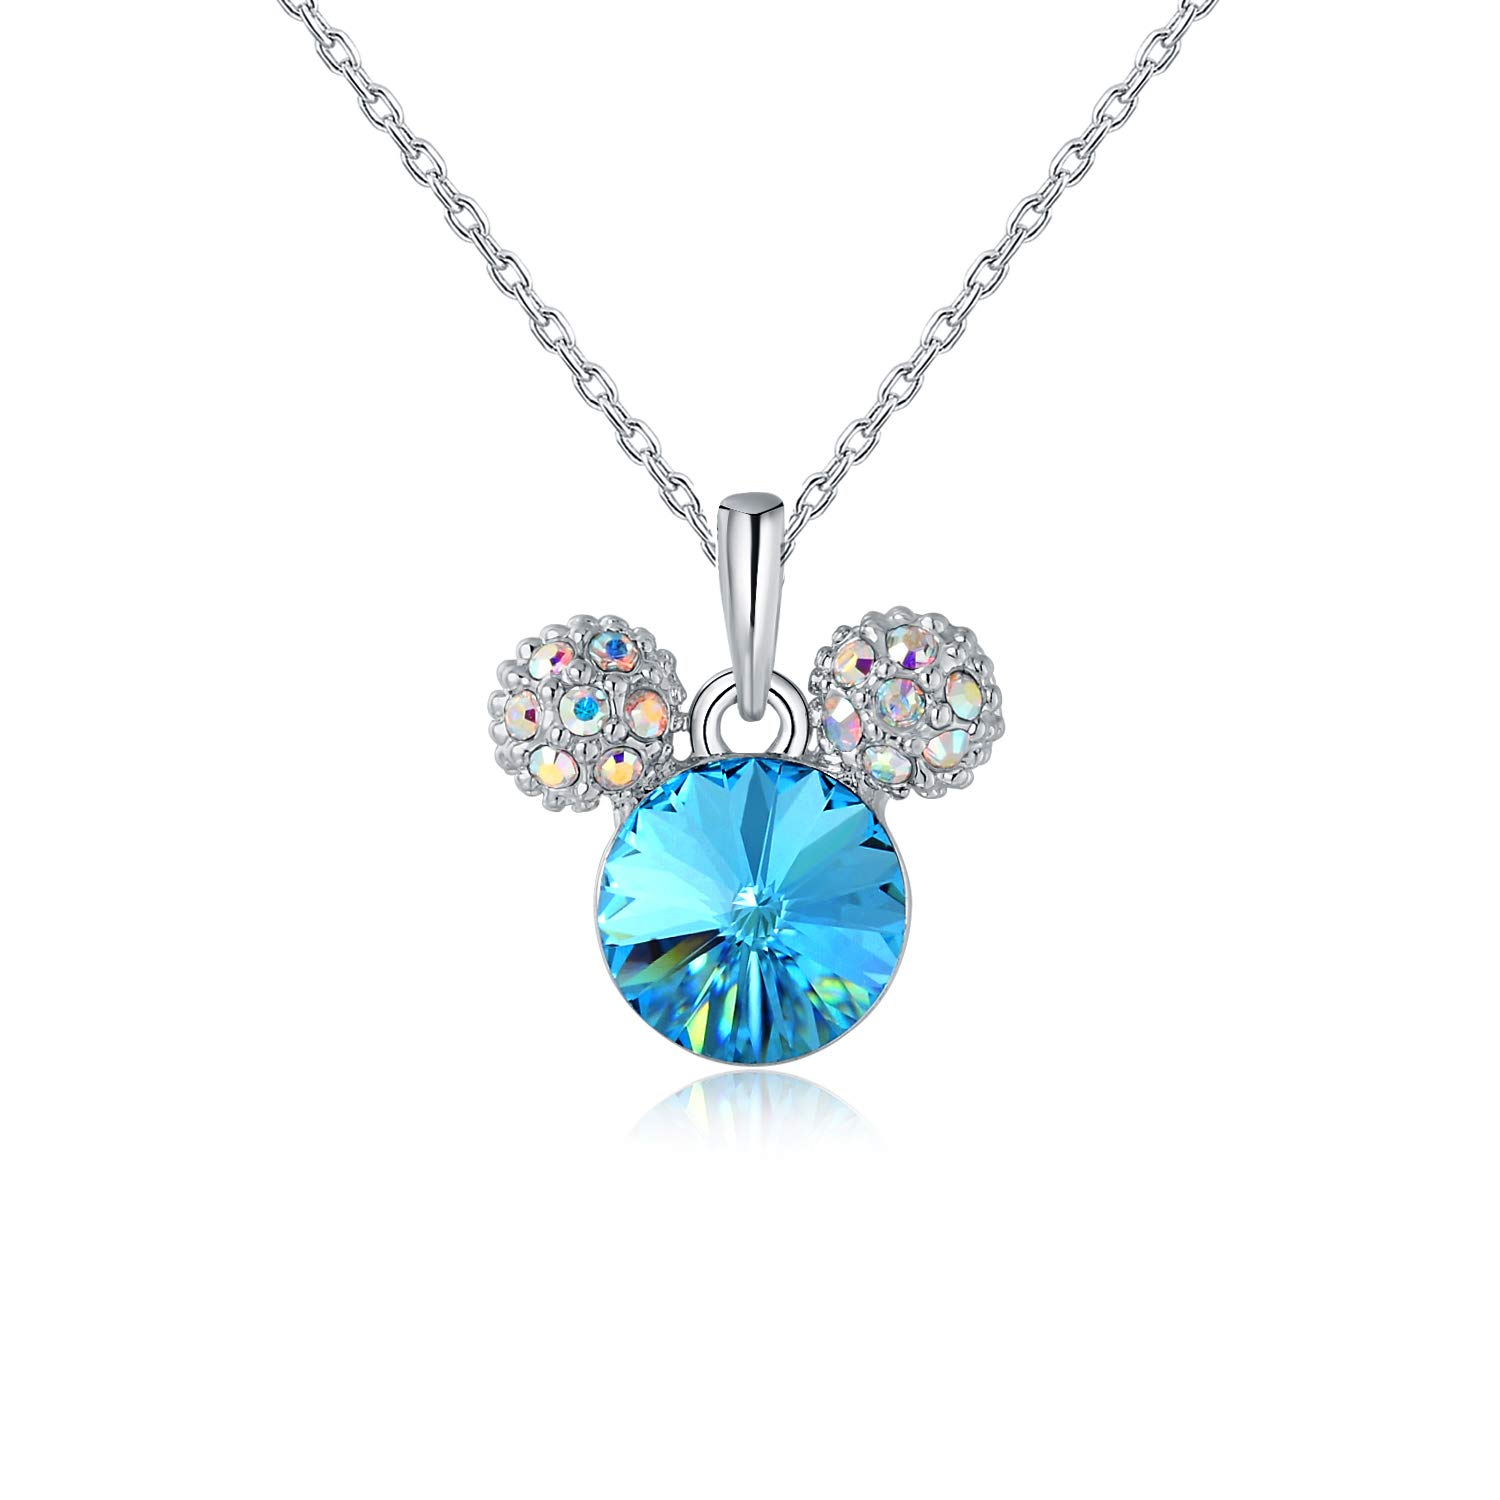 HERMOSO Lovely Mouse Pendant Necklace for Girls/Womens,Made with Swarovski Crystal, Choker Chain 16+2inch Jewellery